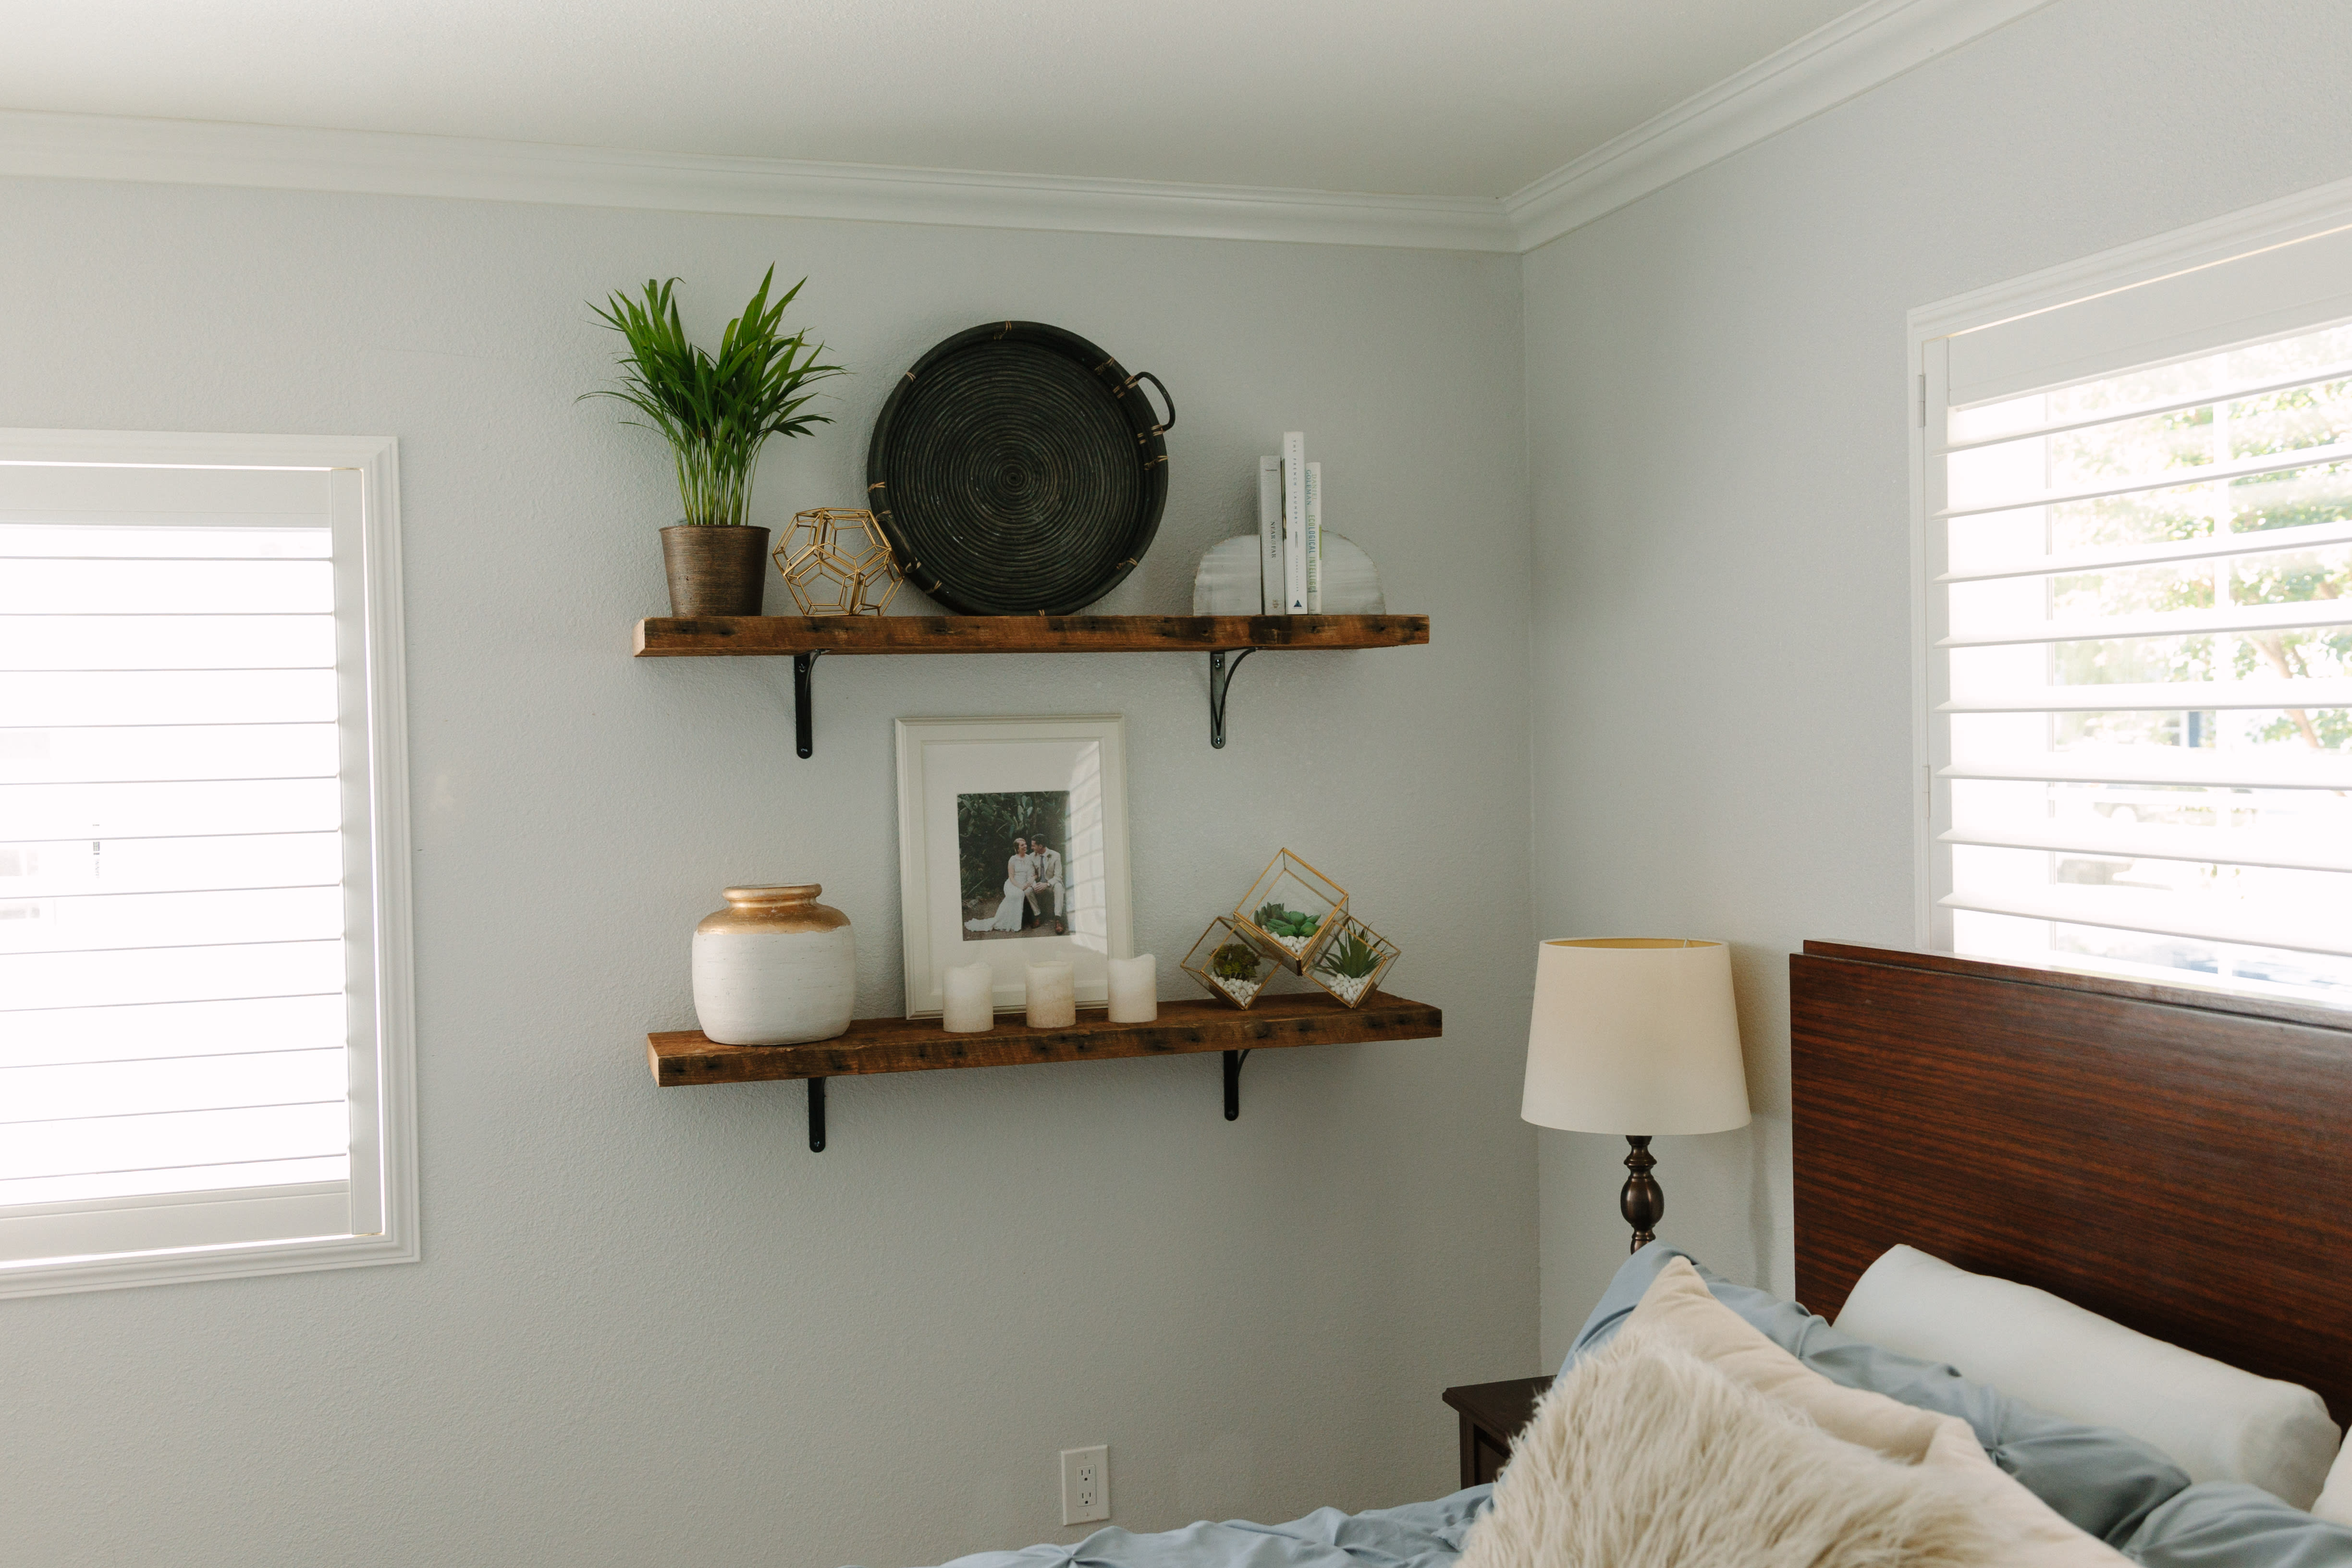 Two decorated reclaimed wood shelves on a bedroom wall.